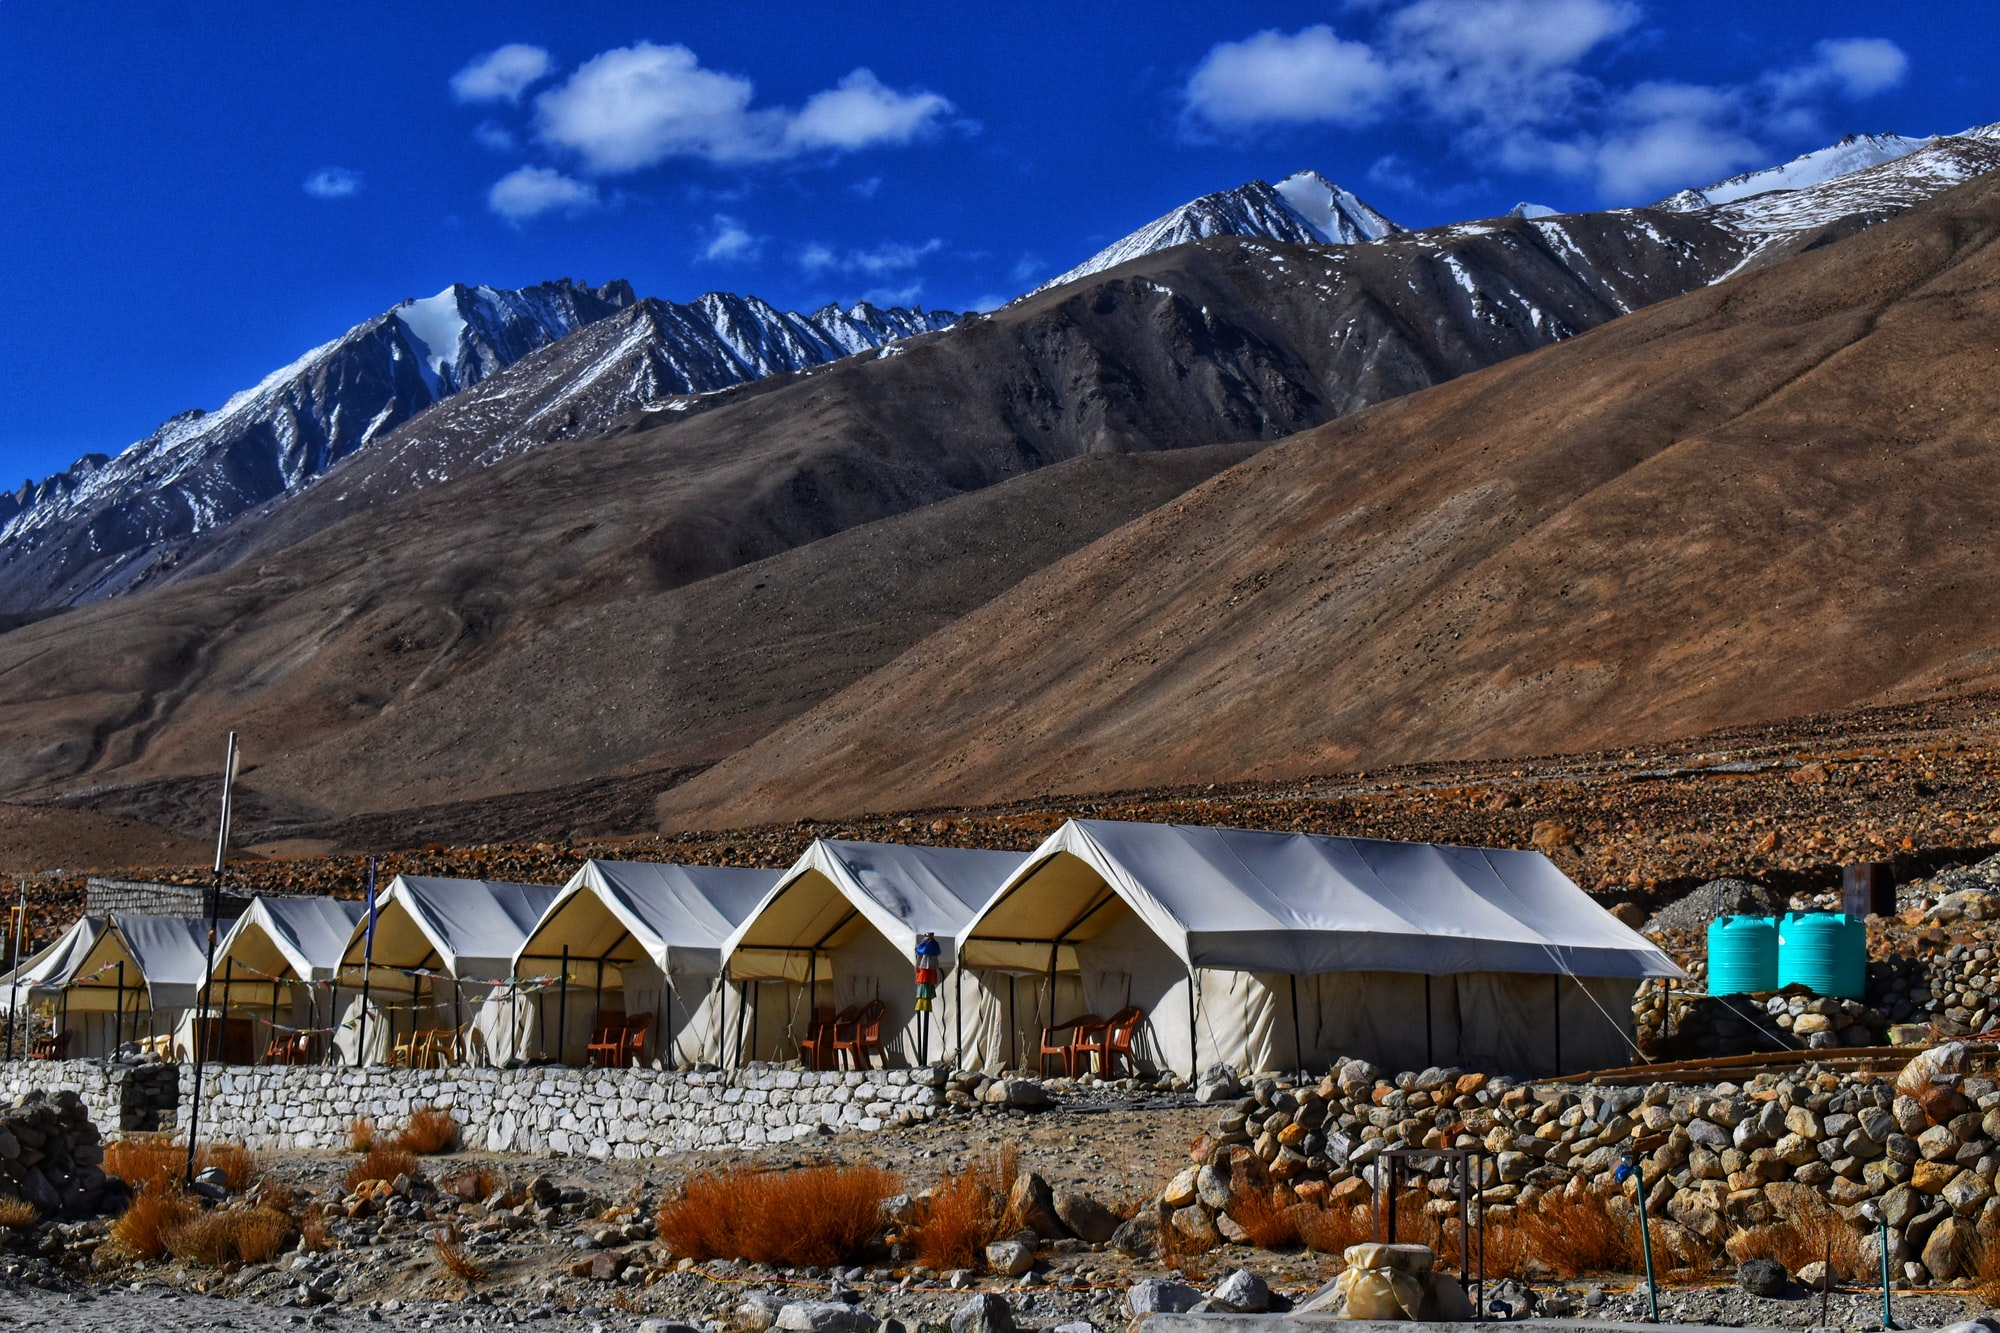 Tents in the backdrop of mountain ranges..